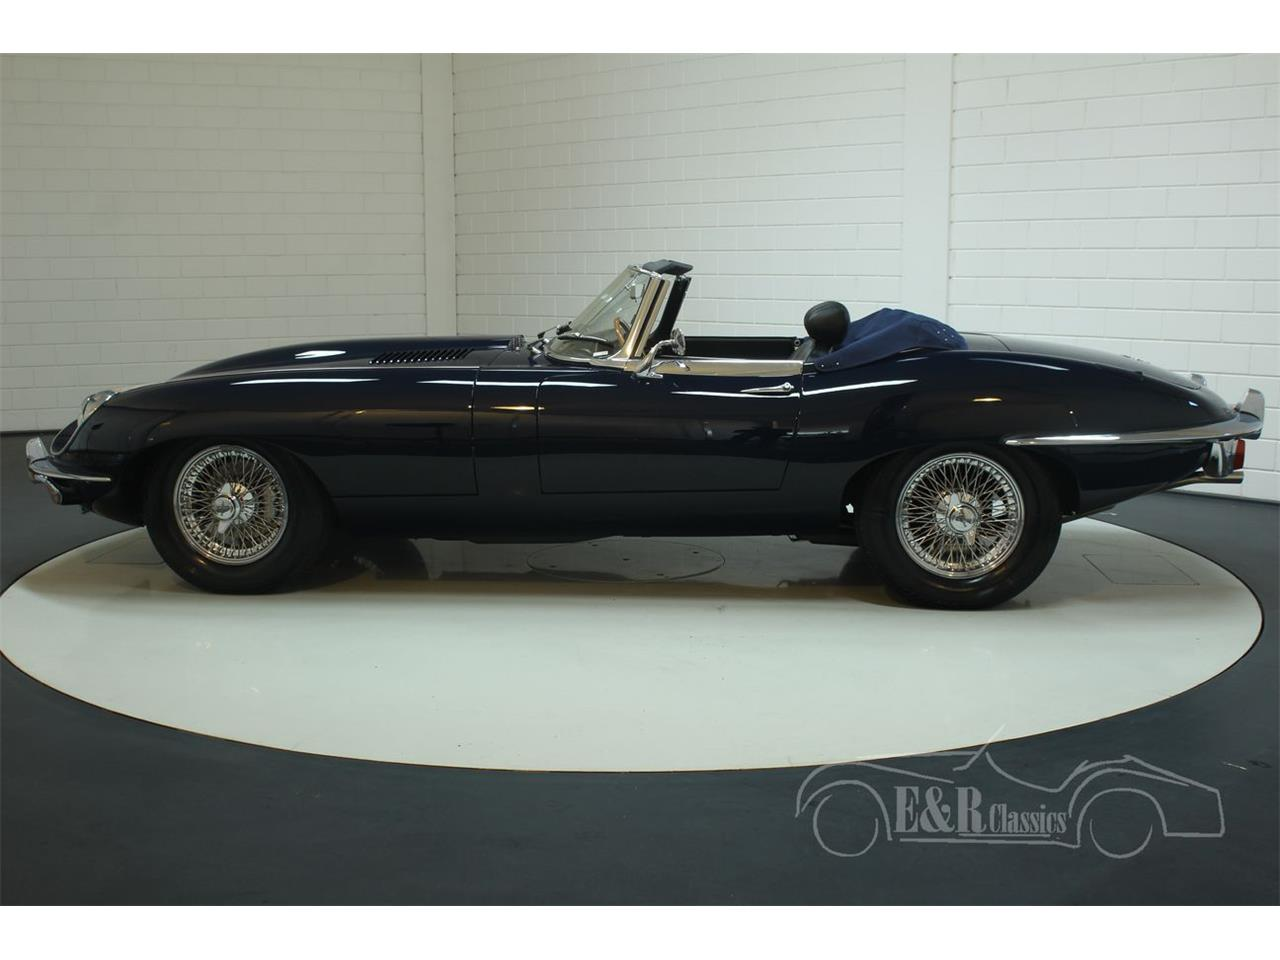 Large Picture of 1969 E-Type located in Waalwijk Noord-Brabant - $139,400.00 - Q45K